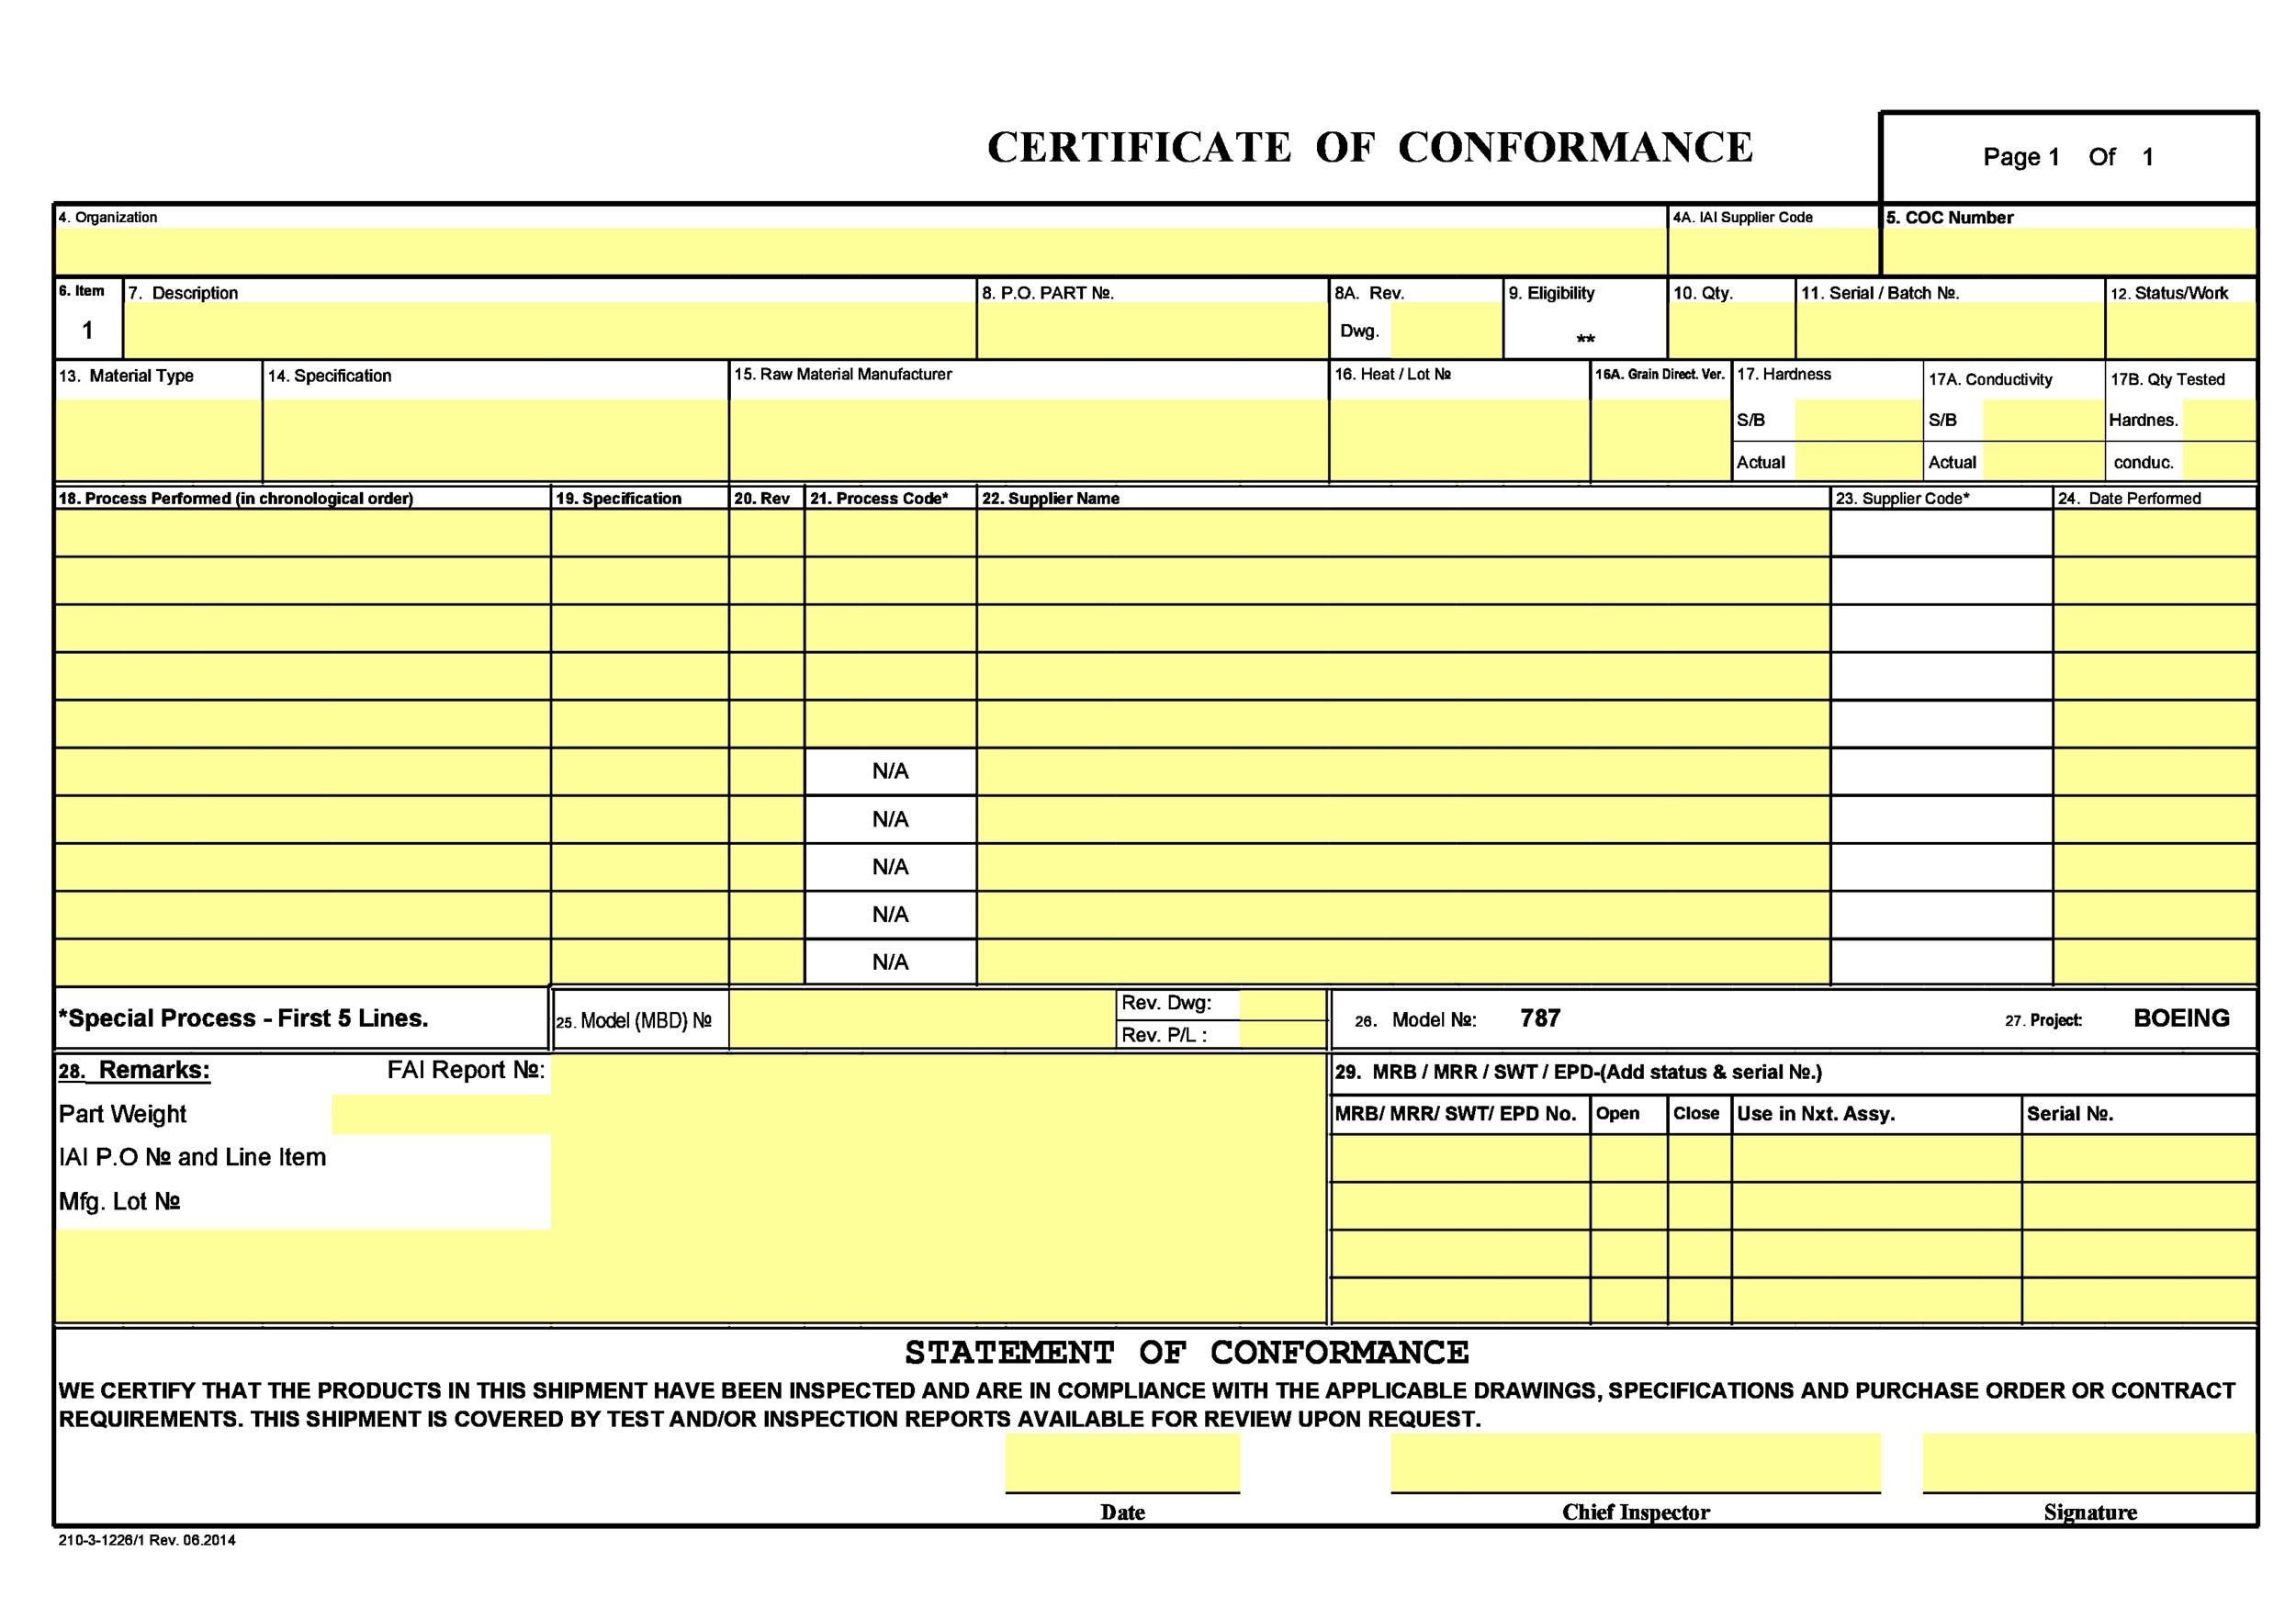 40 Free Certificate of Conformance Templates & Forms